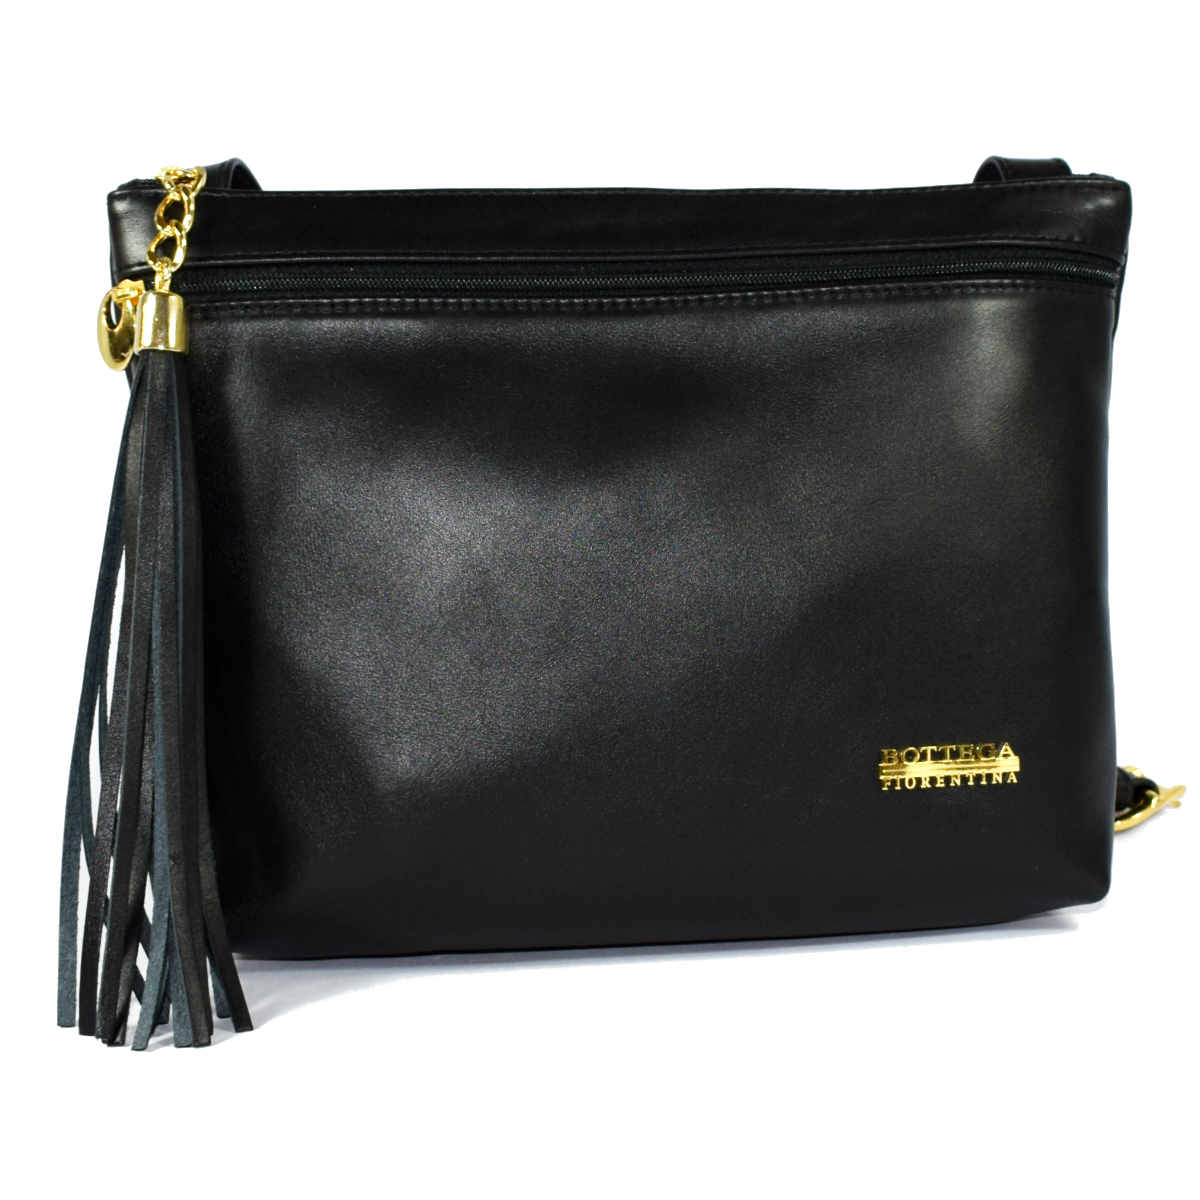 1776 MEDIUM RECTANGULAR SHOULDER BAG by Bottega Fiorentina